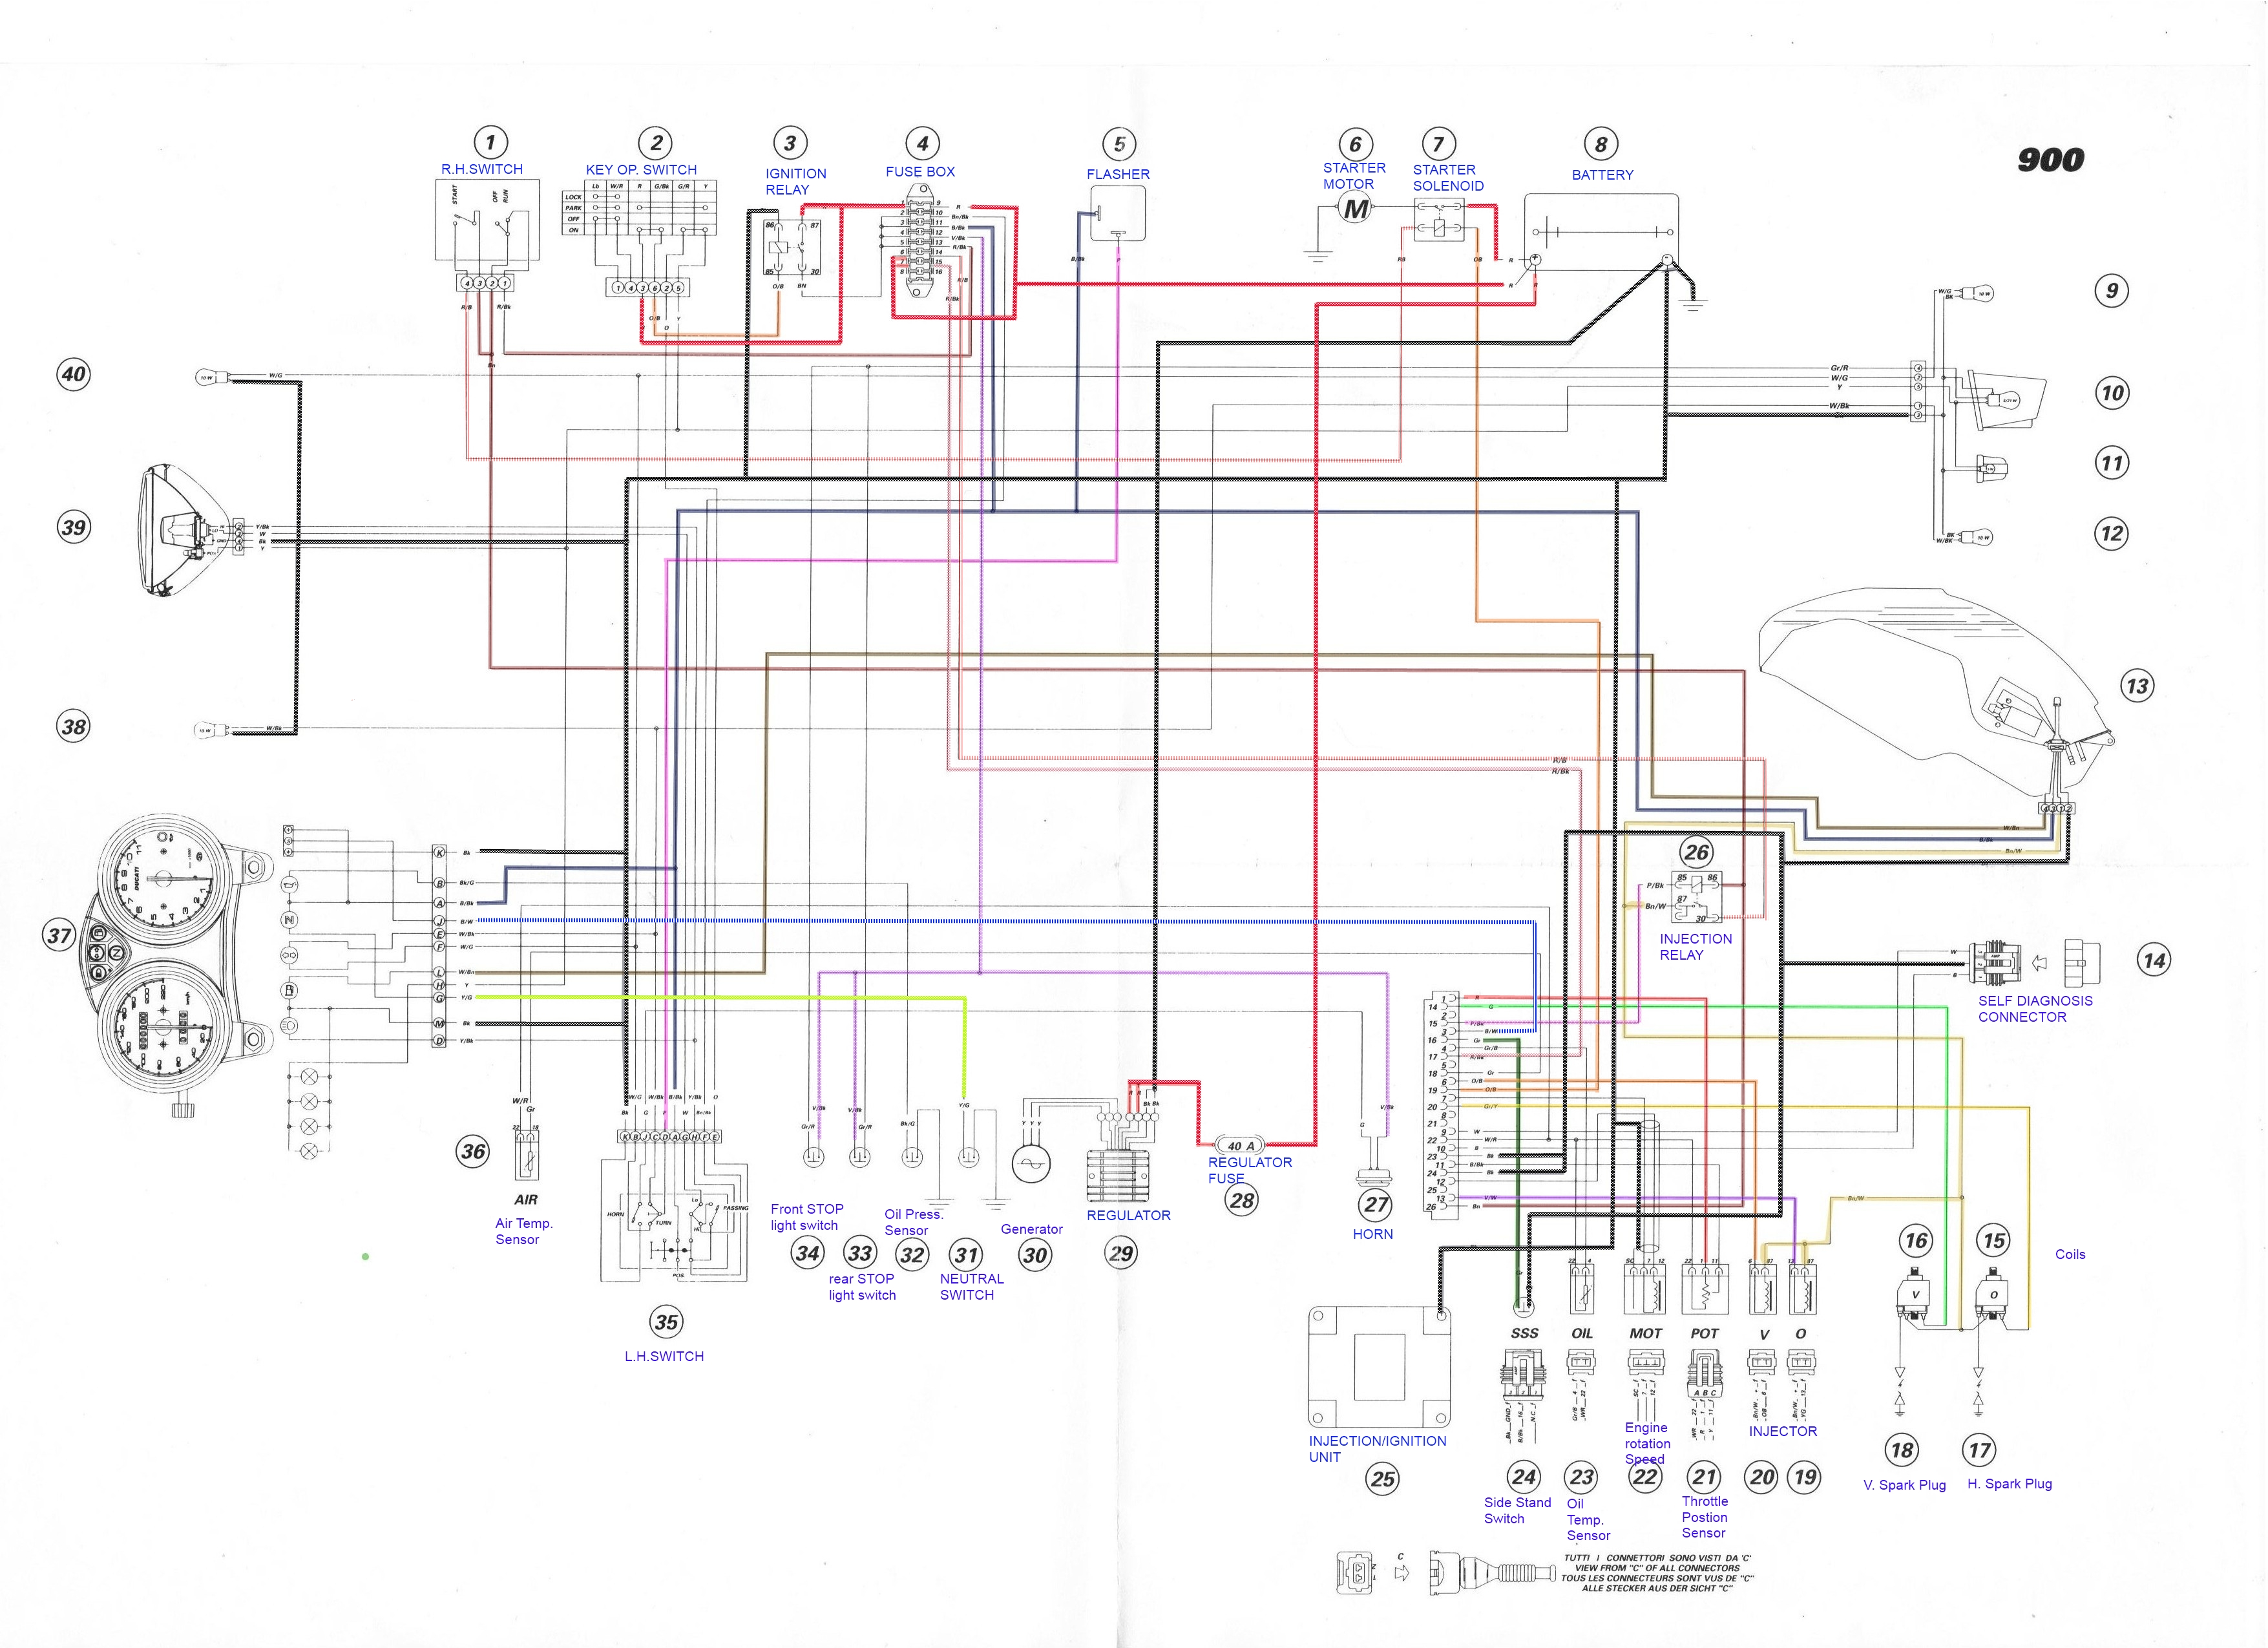 Odes Wiring Diagram - Wiring Diagrams on